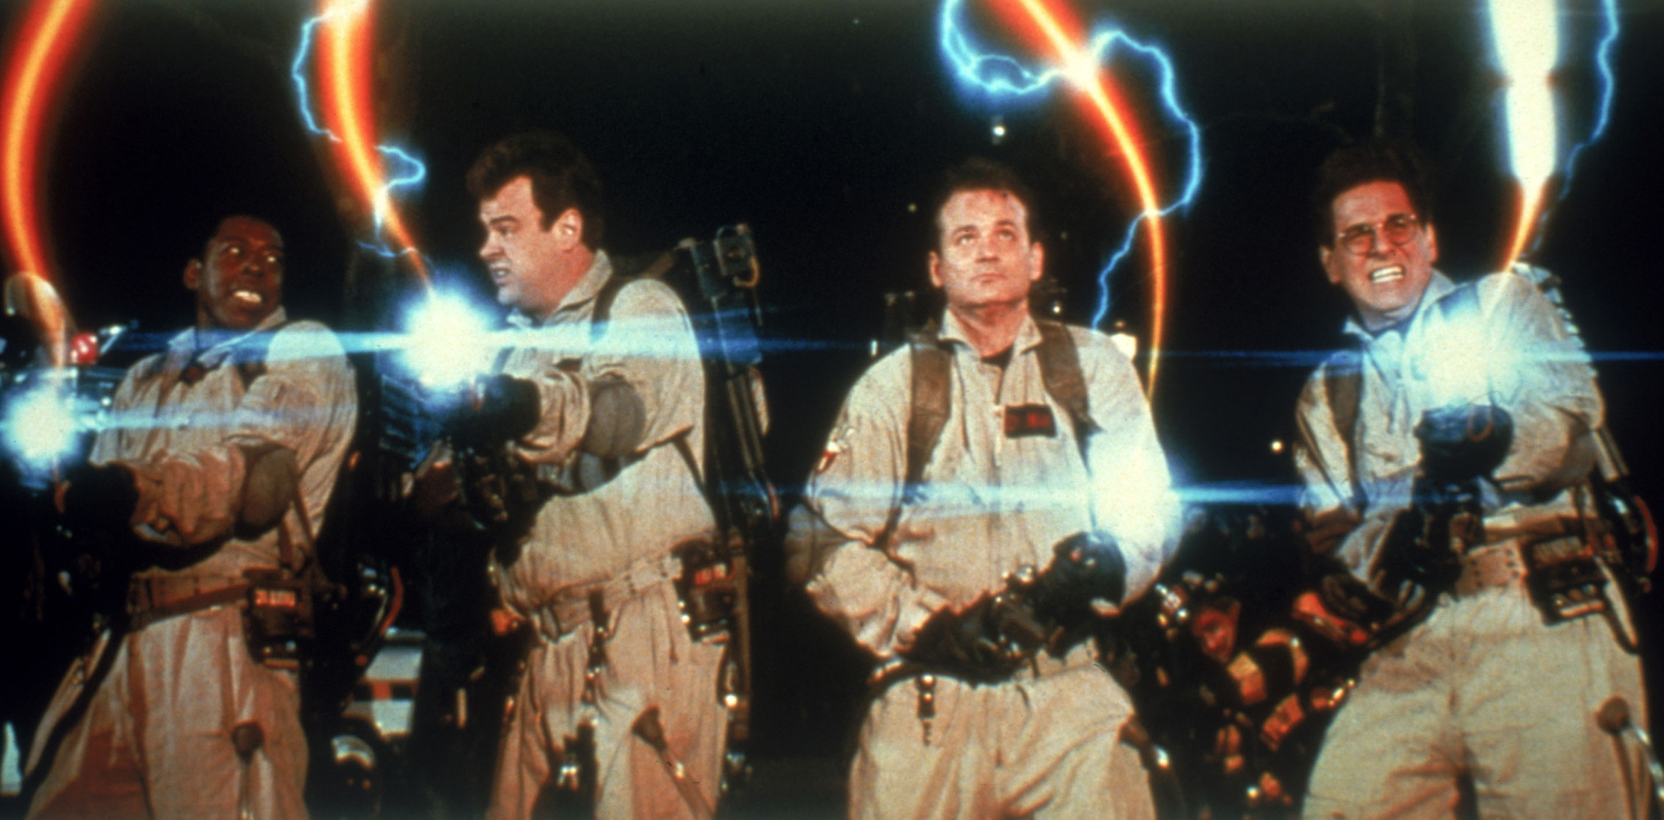 Ghostbusters scores new 4K Blu-ray set offering fans rare